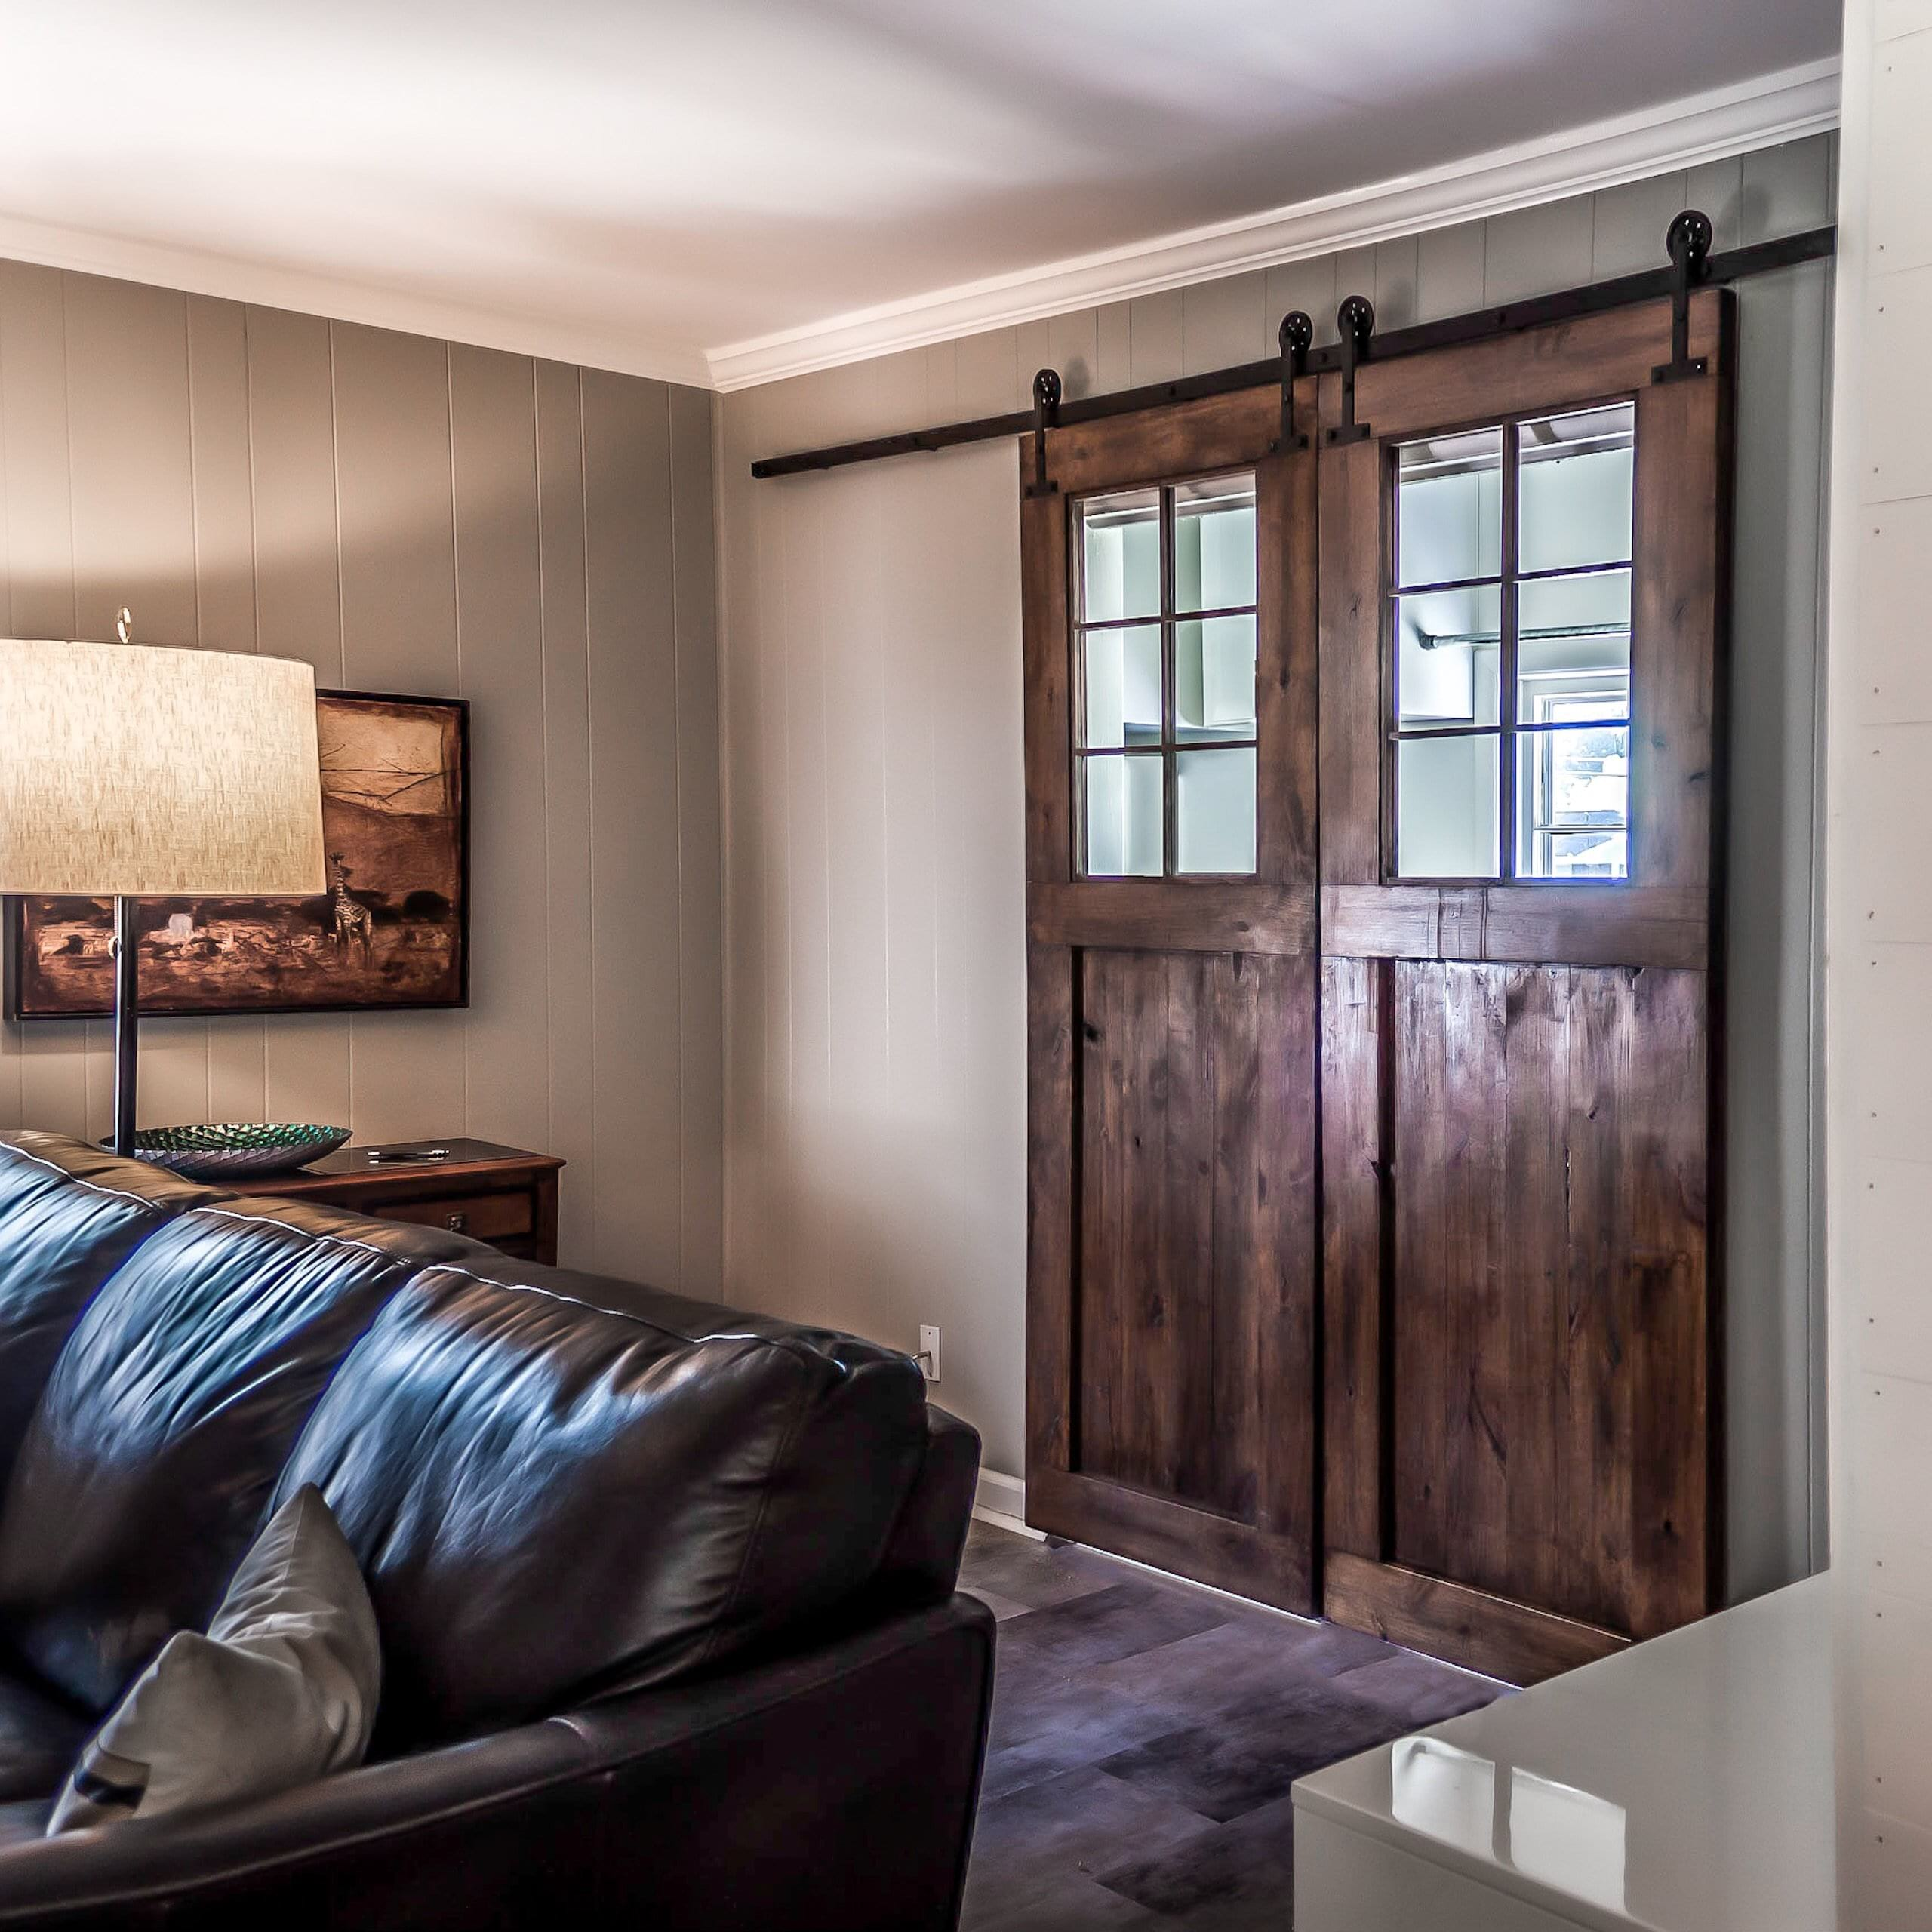 No 248 The Sliding Barn Door With A Window Edison Mccarthy